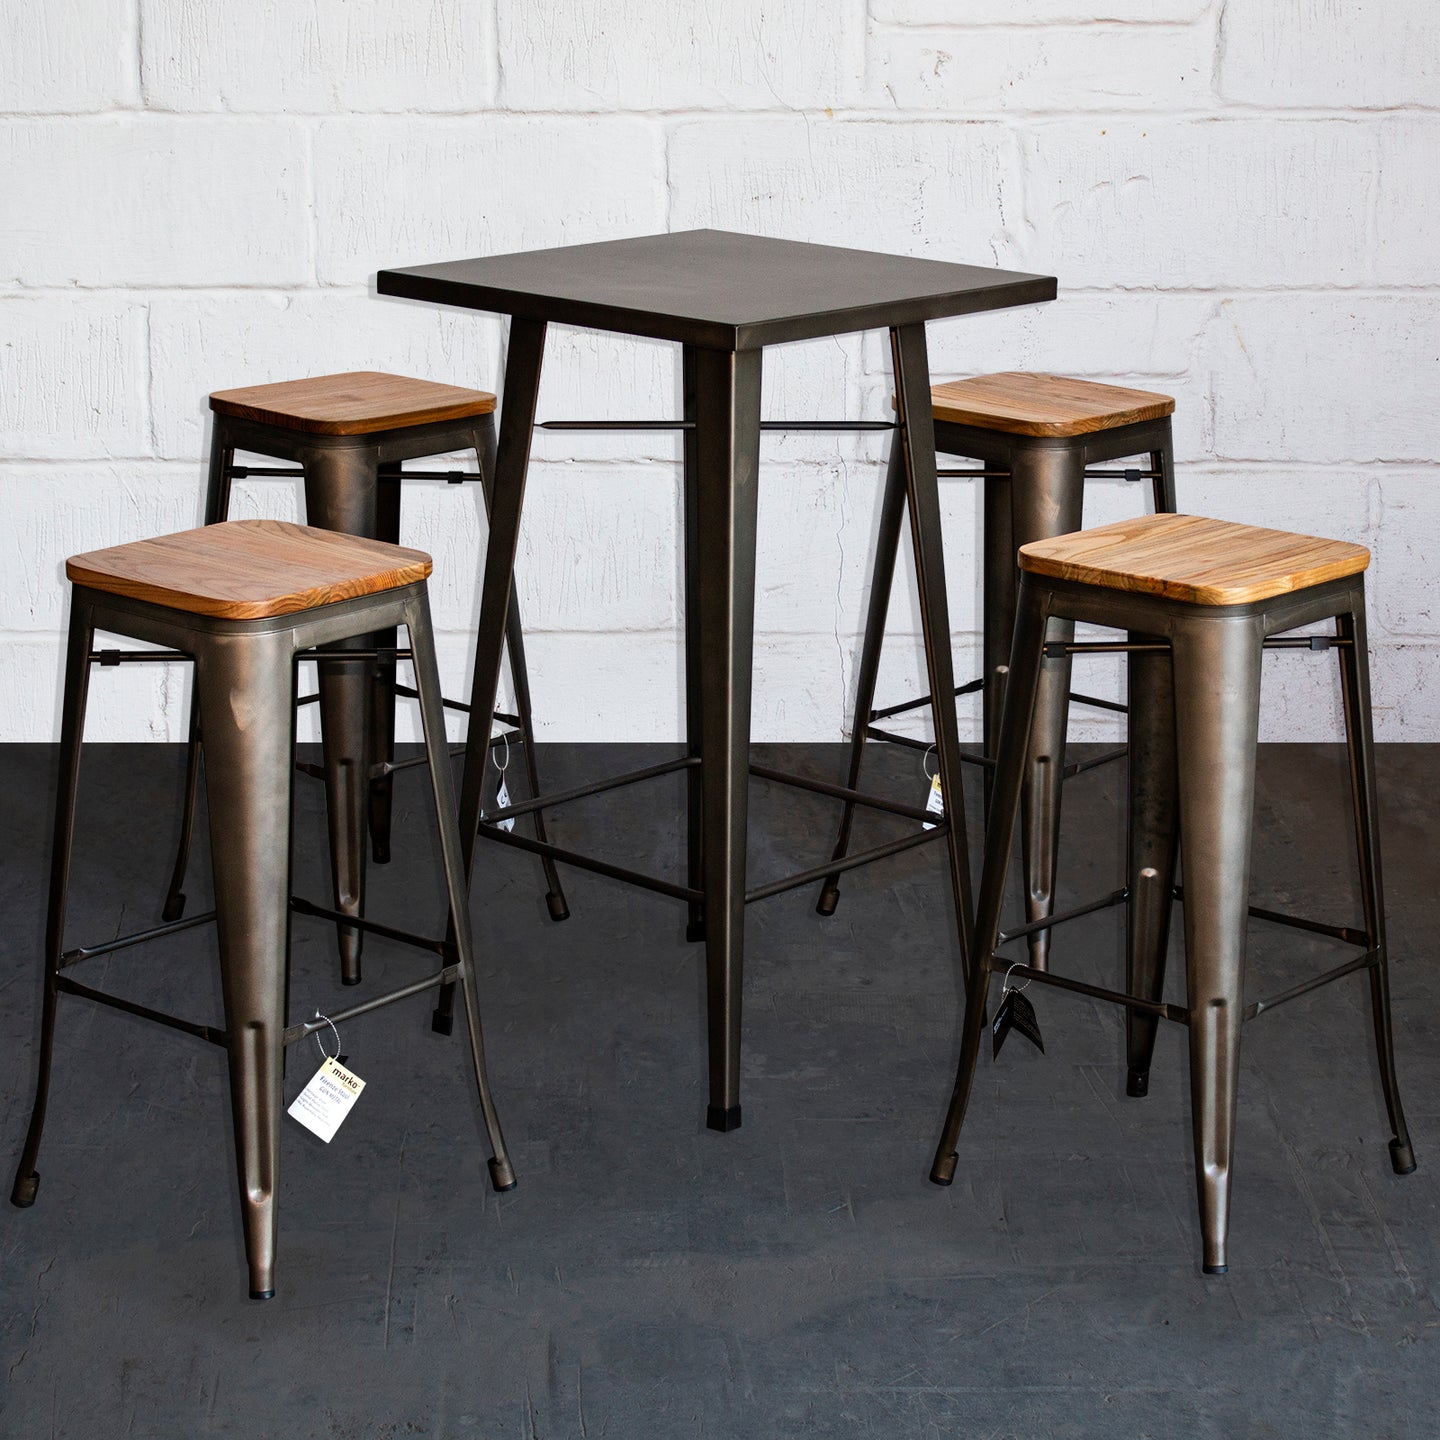 5PC Laus Table & Firenze Bar Stool Set - Gun Metal Grey